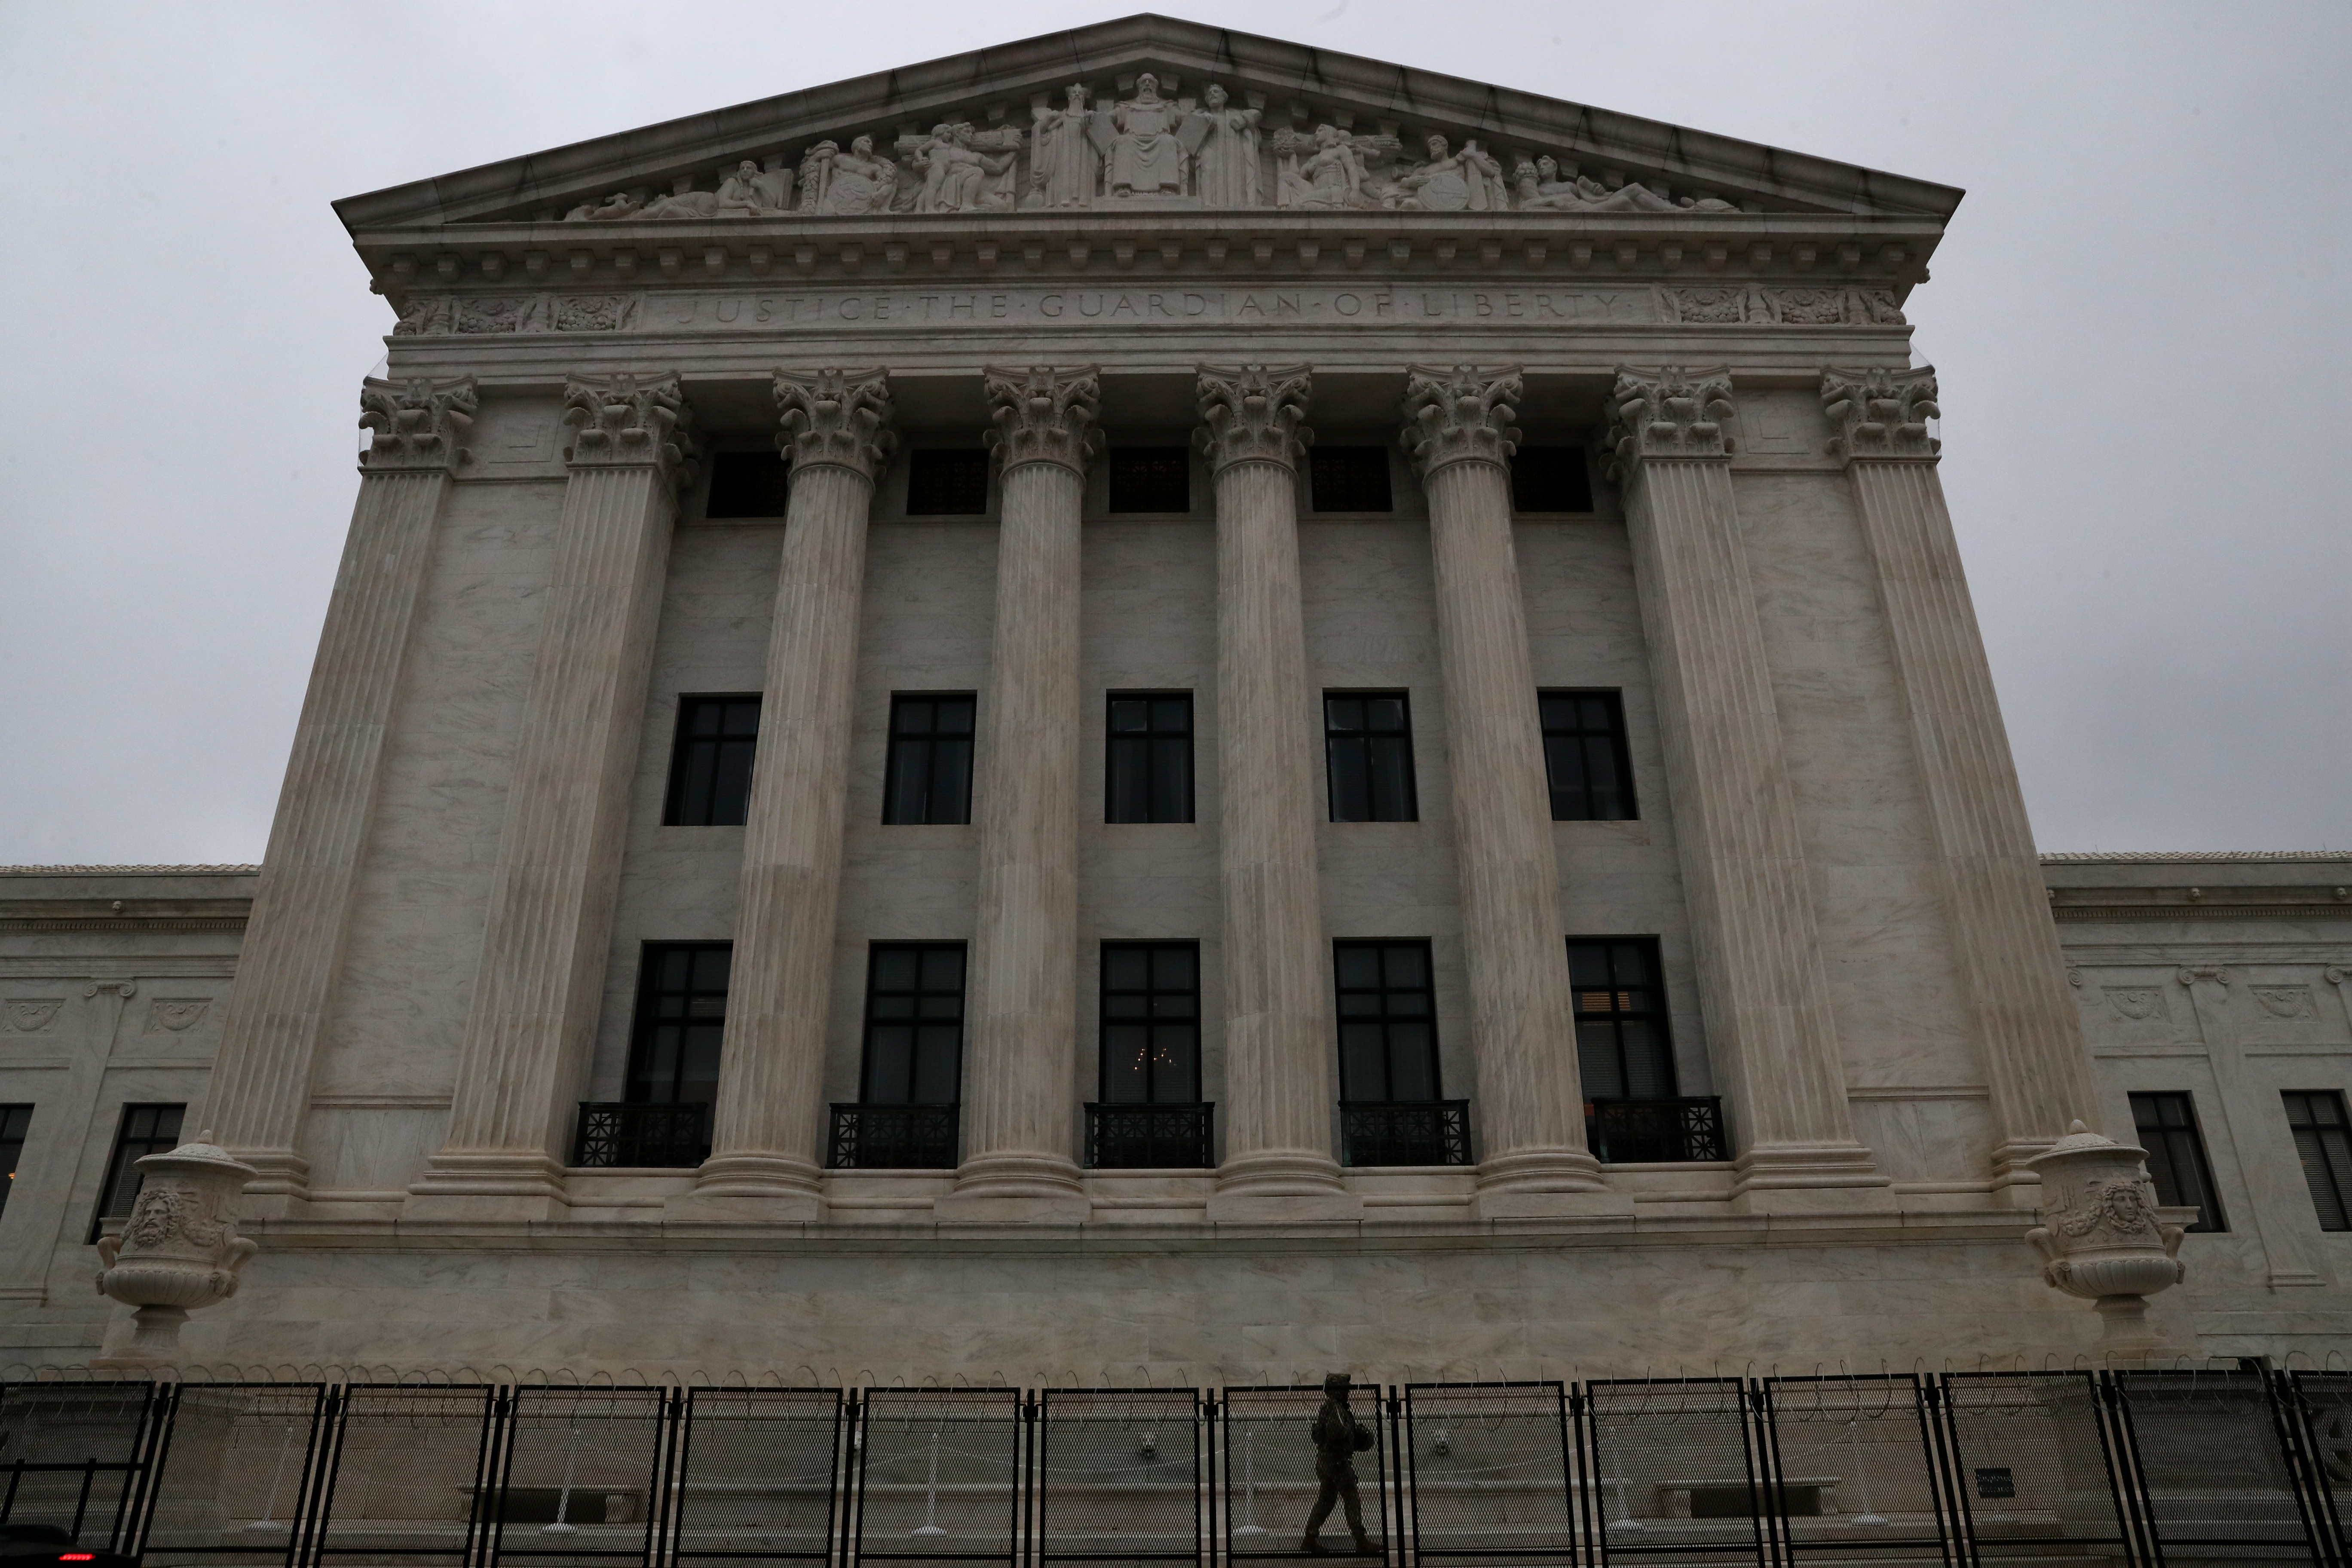 A member of the U.S. National Guard walks the perimeter behind the U.S. Supreme Court near the U.S. Capitol Building on the third day of the second impeachment trial of former U.S. President Donald Trump over his role in the January 6 attack on the U.S. Capitol Building in Washington, U.S., February 11, 2021. Picture taken February 11, 2021. REUTERS/Leah Millis